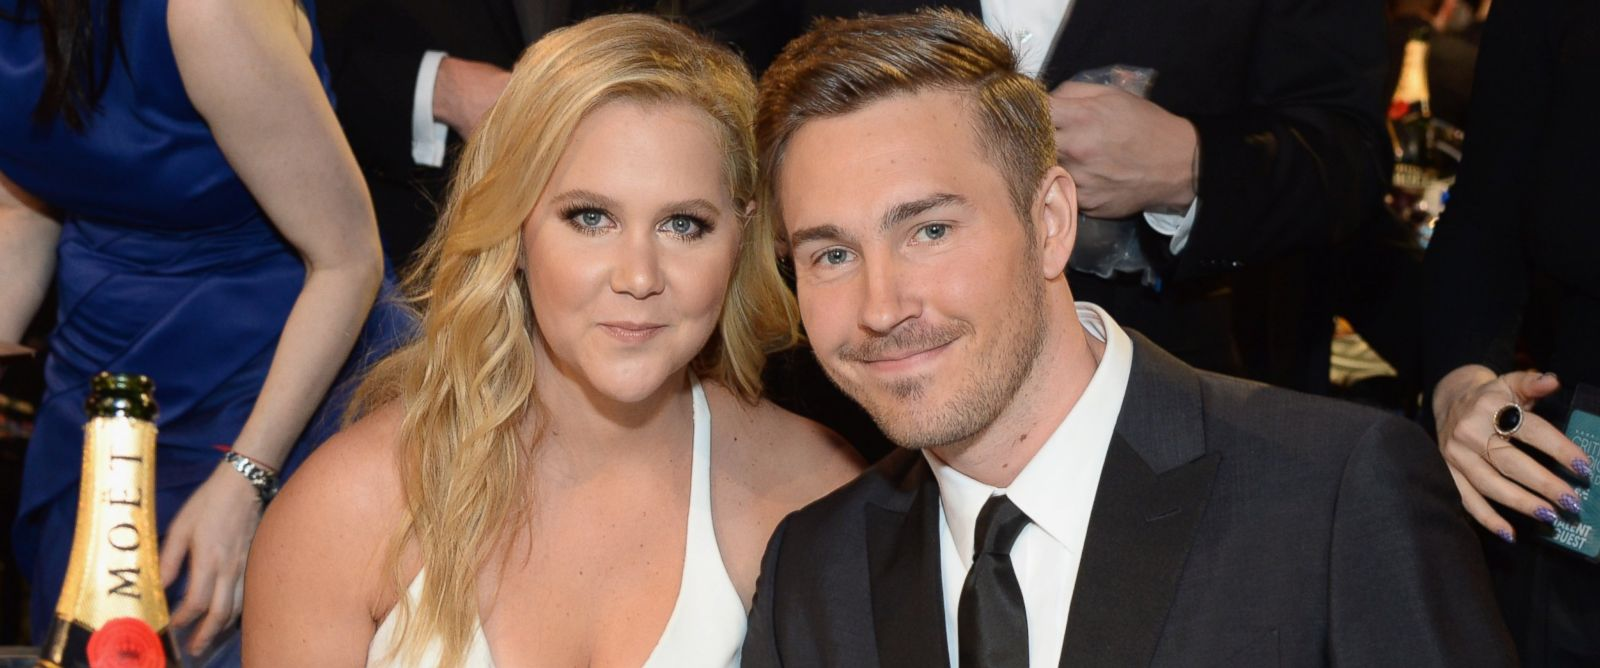 PHOTO: Amy Schumer and Ben Hanisch attend the 21st Annual Critics Choice Awards at Barker Hangar on Jan. 17, 2016 in Santa Monica, California.